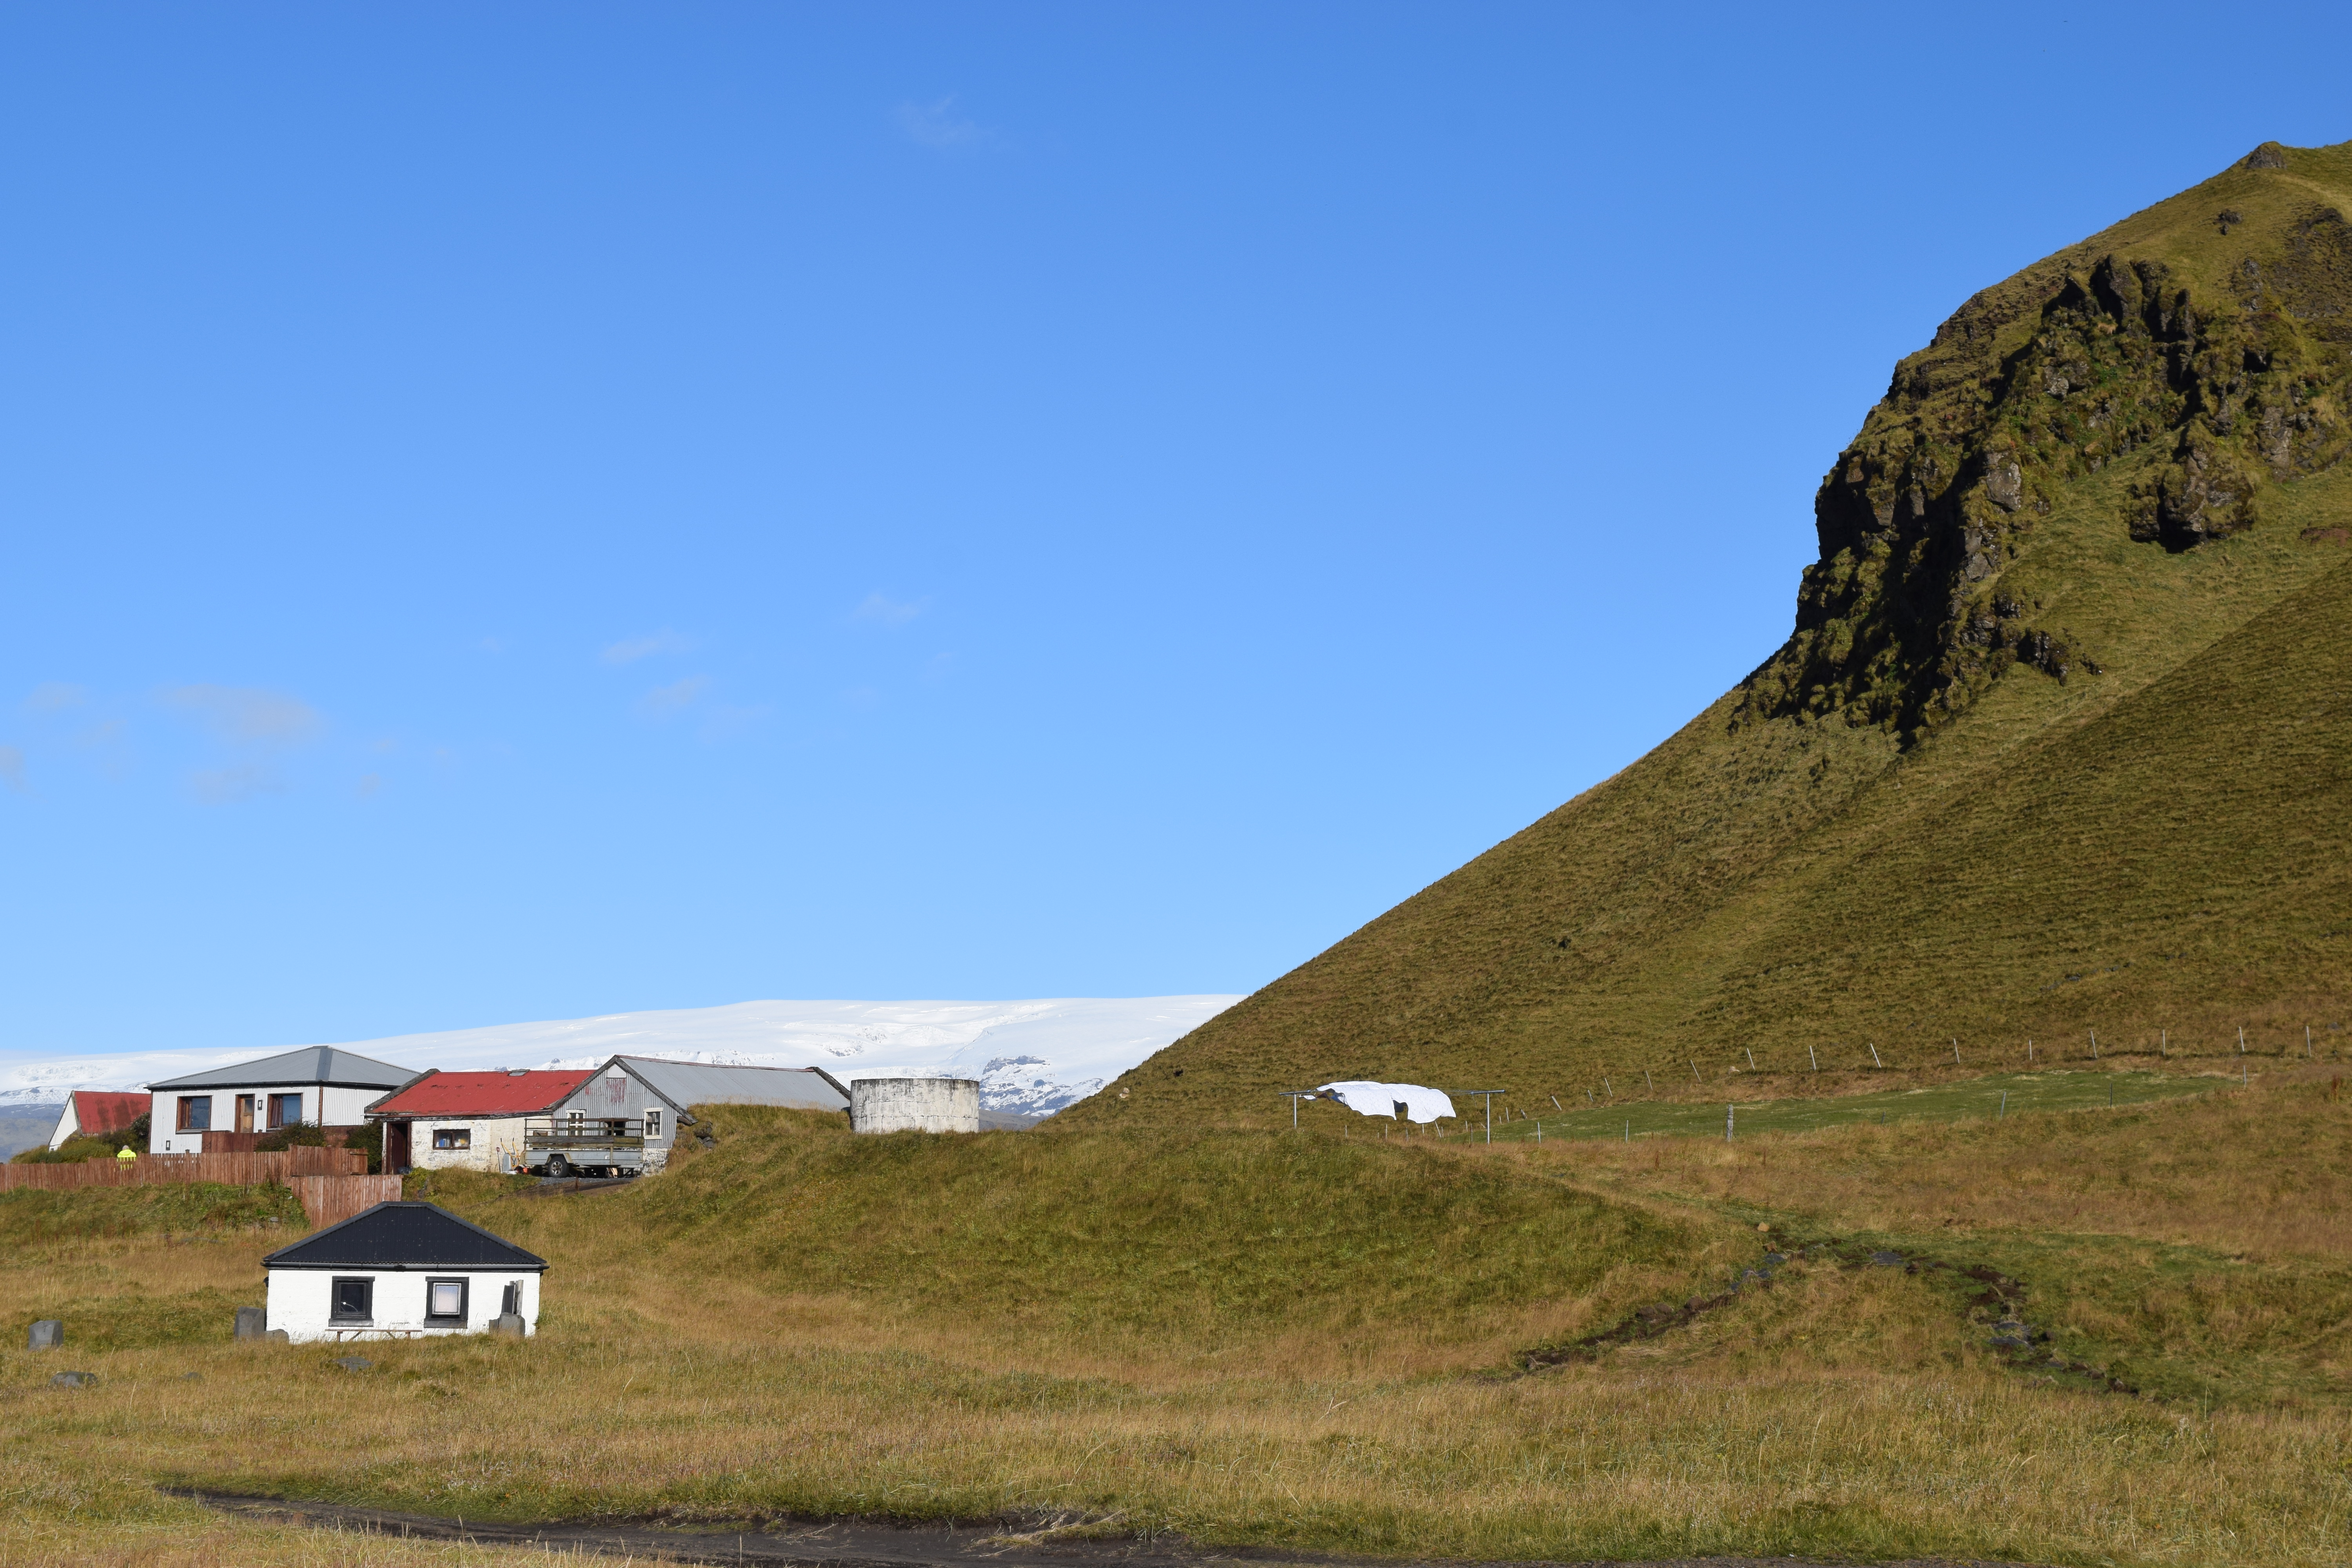 Frequently Asked Questions About Our Iceland Trip - Planning A Trip To Iceland - What to know before going to Iceland - How expensive is Iceland - Tips for planning a trip to Iceland - Reykjavik - Vik - Iceland Itinerary - Iceland Travel Blog - Iceland Travel Tips - #iceland #travel #FAQ